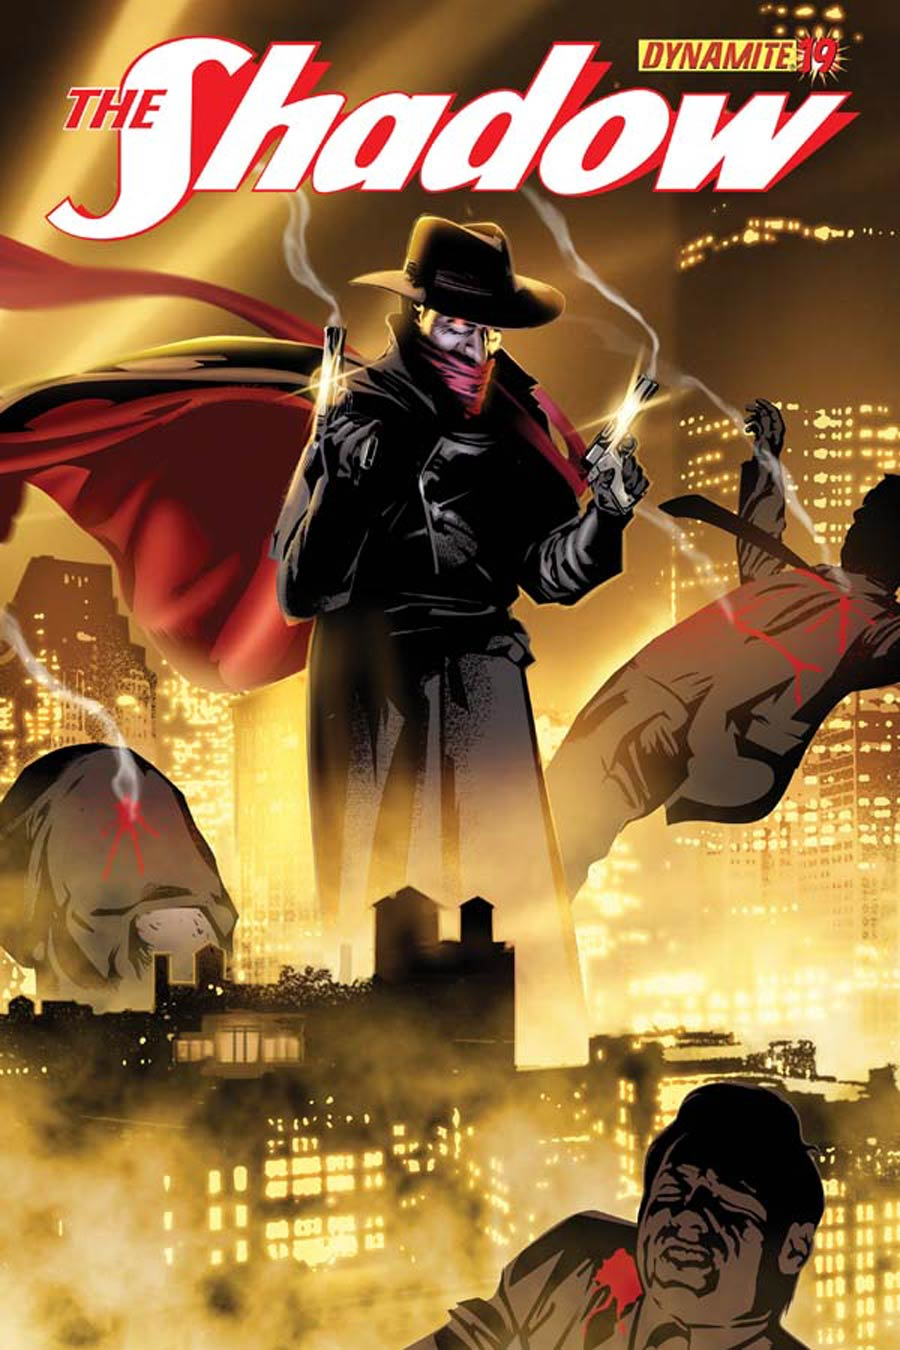 Shadow Vol 5 #19 Cover C Variant Dennis Calero Subscription Cover